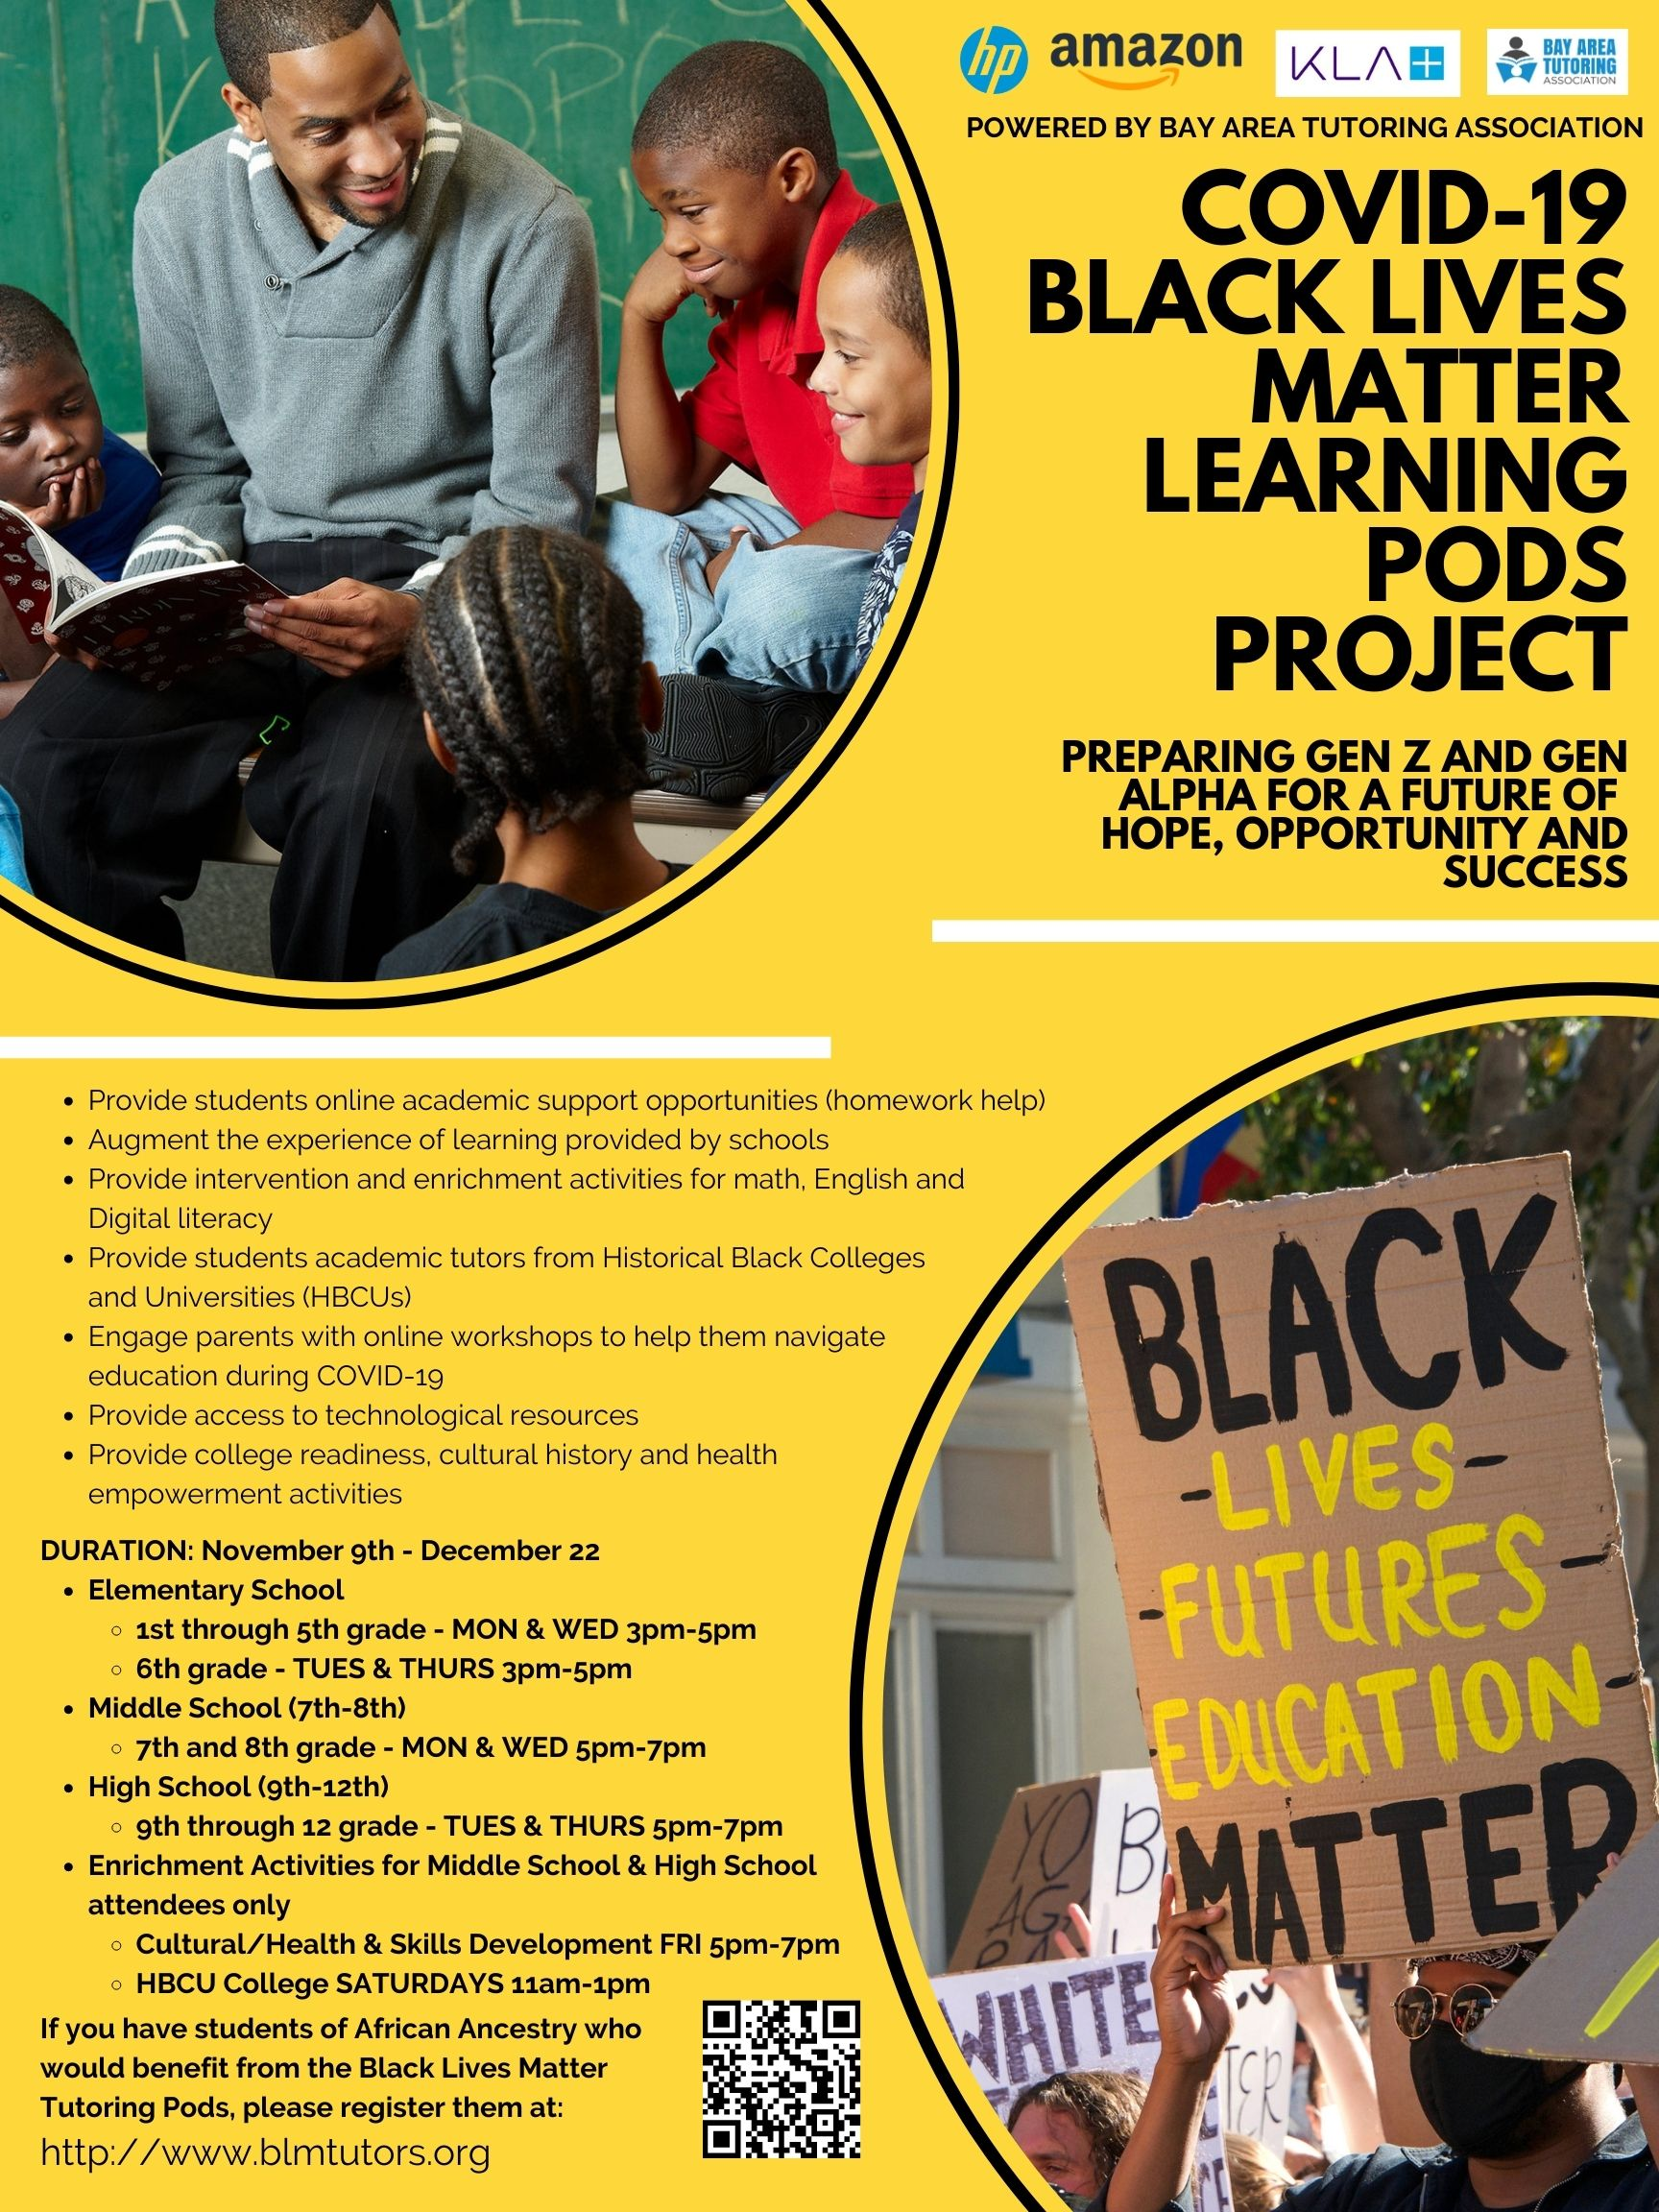 Flyer for COVID-19 Black Lives Matter Learning Pods Project: Preparing Gen Z and Gen Alpha for a Future of Hope, Opportunity and Success